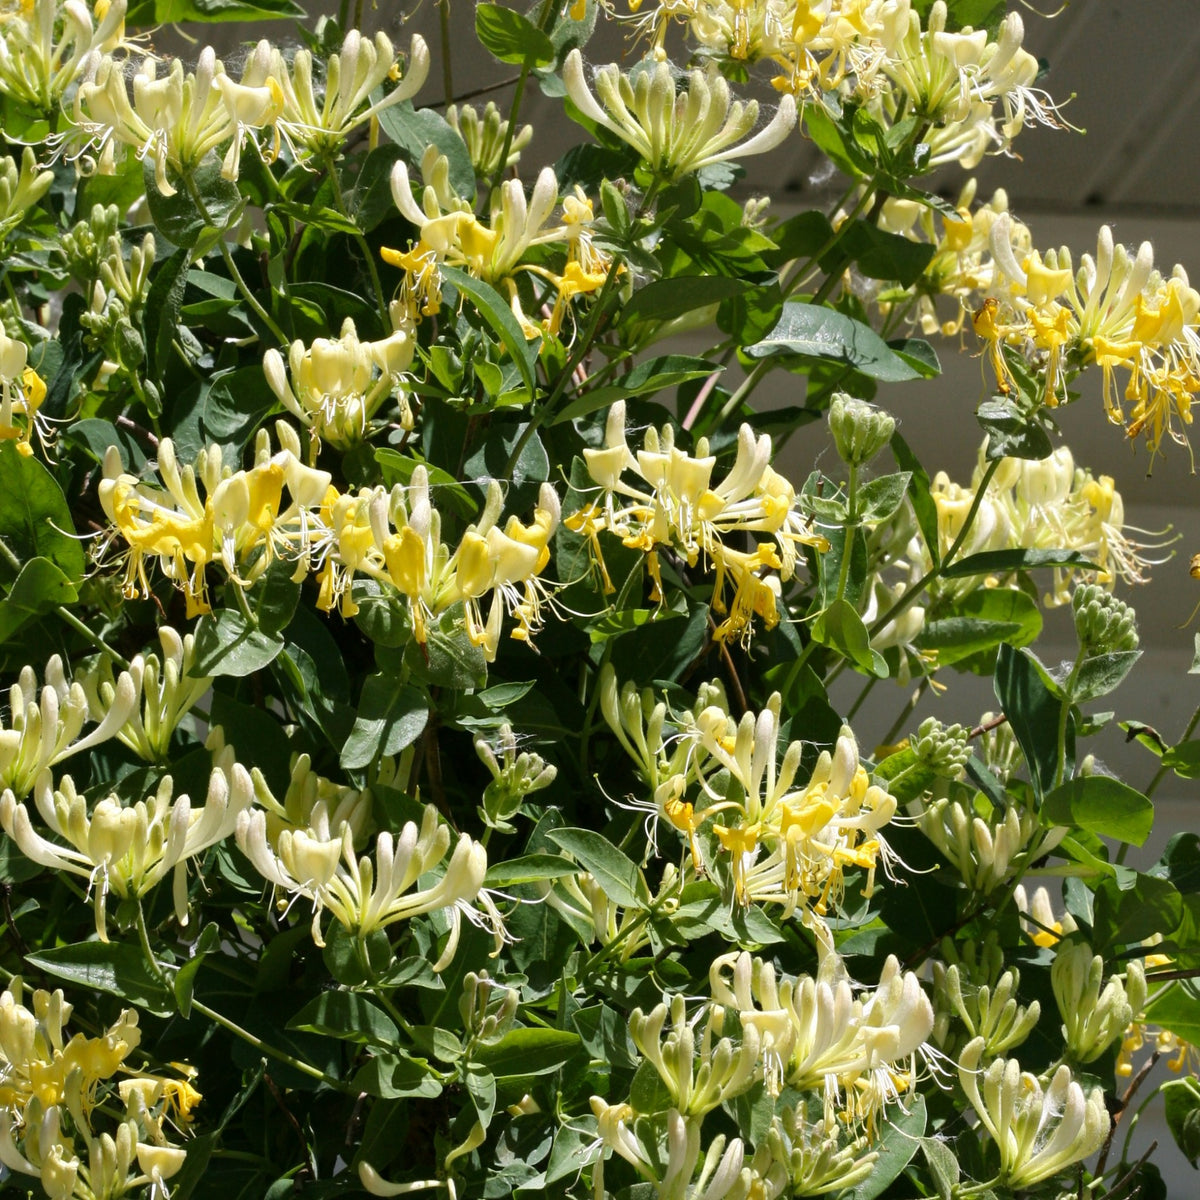 Proven Winners® Shrub Plants|Lonicera - Scentsation' Honeysuckle 1